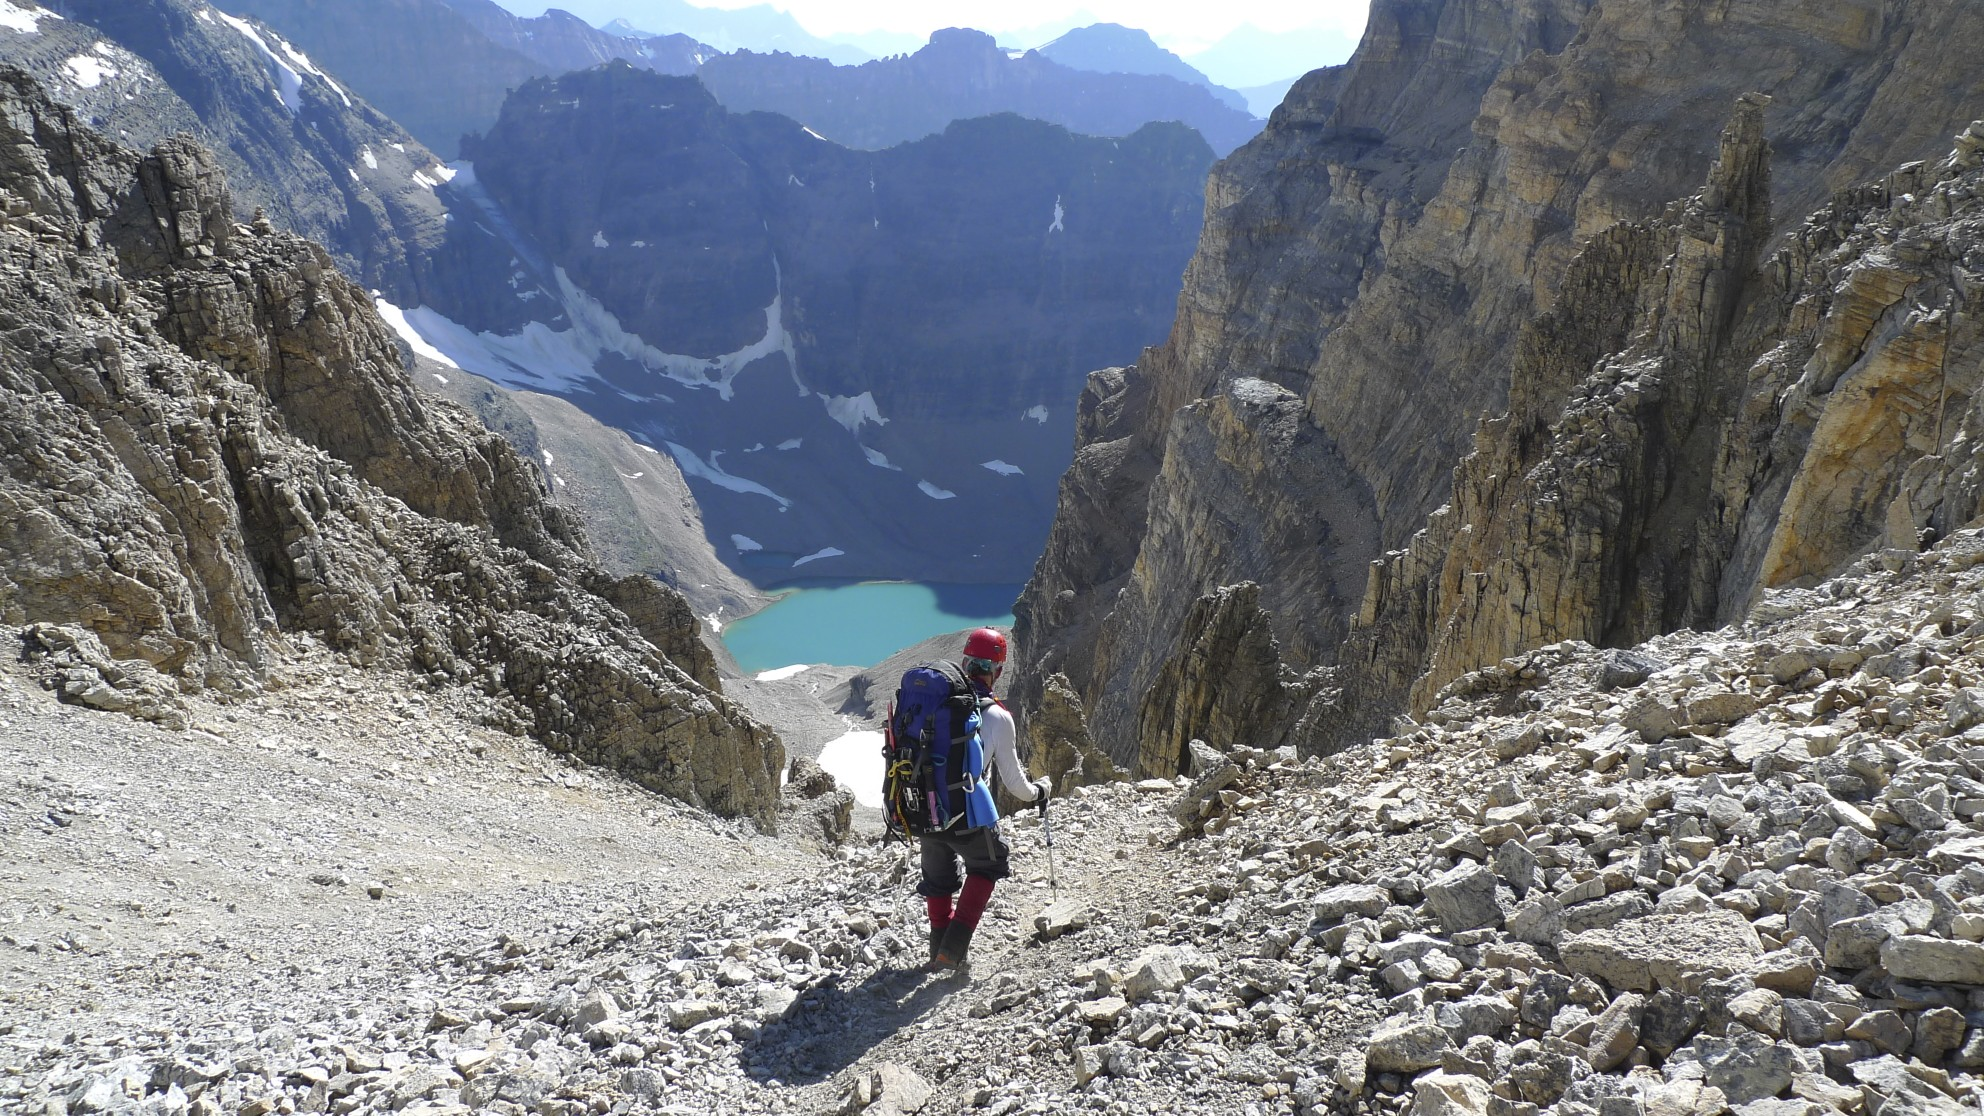 Descending to Lake Oesa from the Abbot Pass